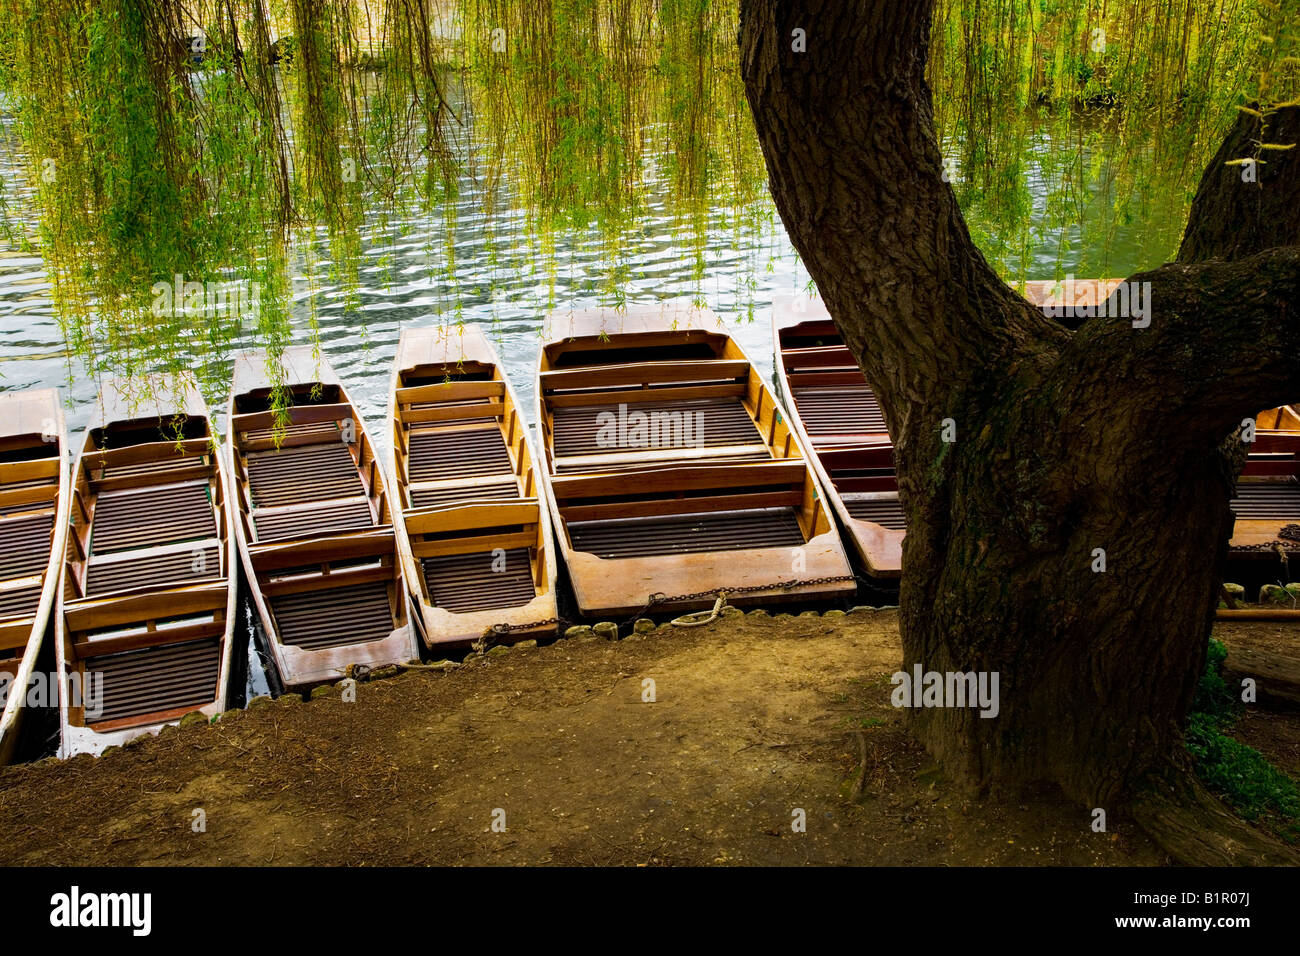 Punts tied up along the bank of the River Cam beneath a weeping willow tree at Cambridge, England, UK - Stock Image